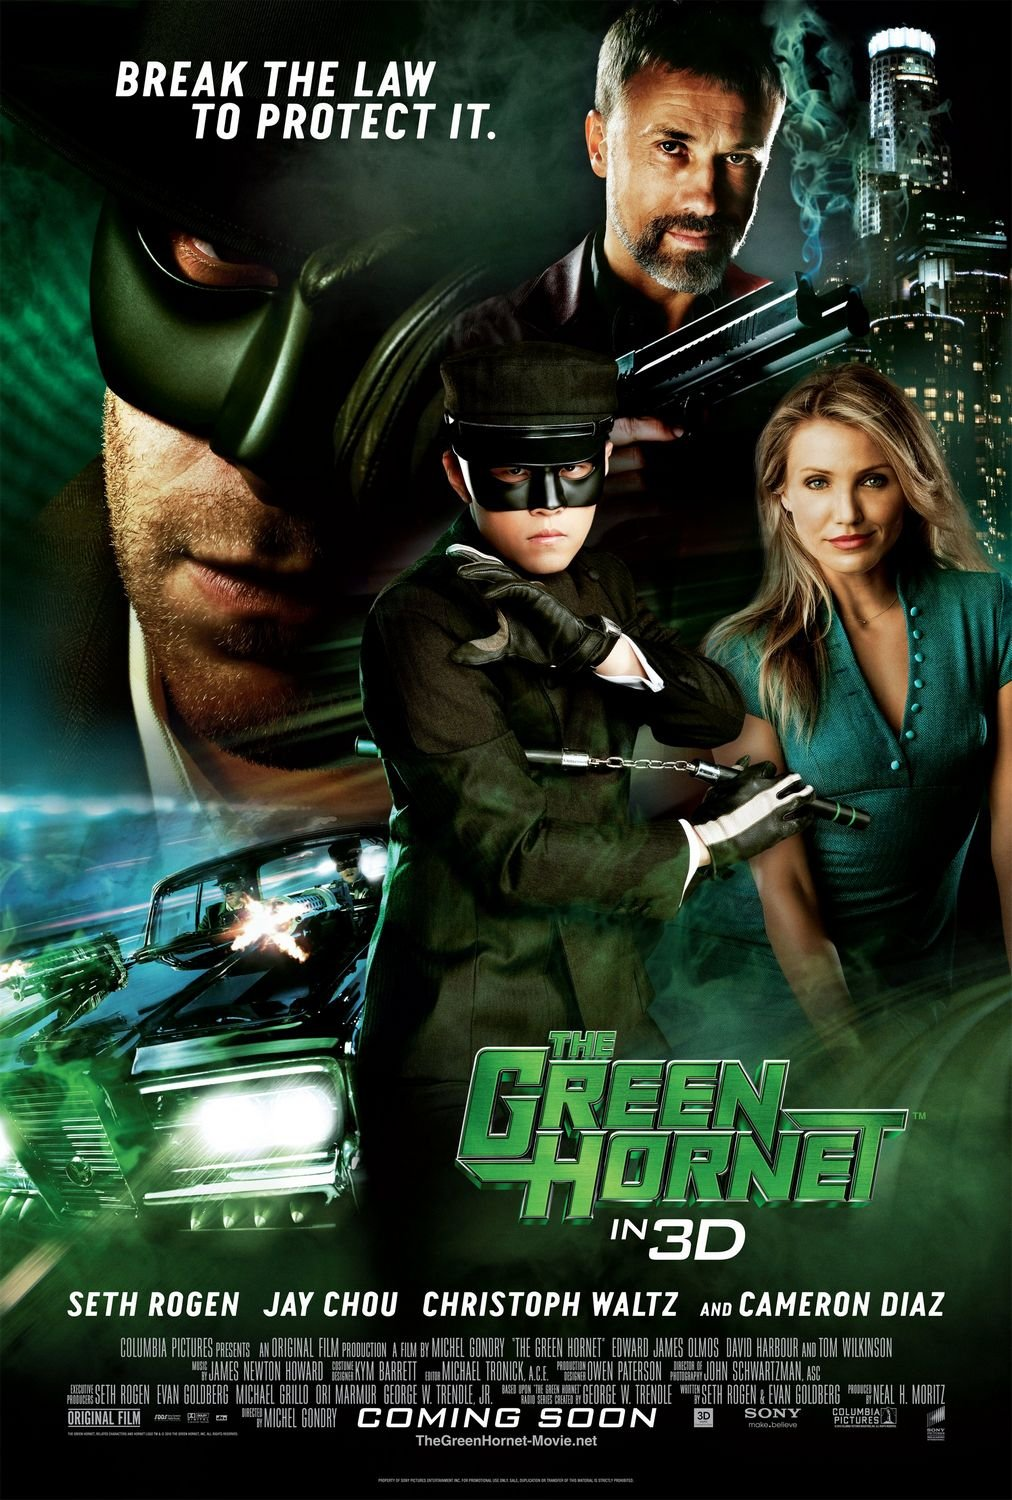 The Green Hornet 2011 Hindi Dual Audio 405MB BluRay ESubs Download